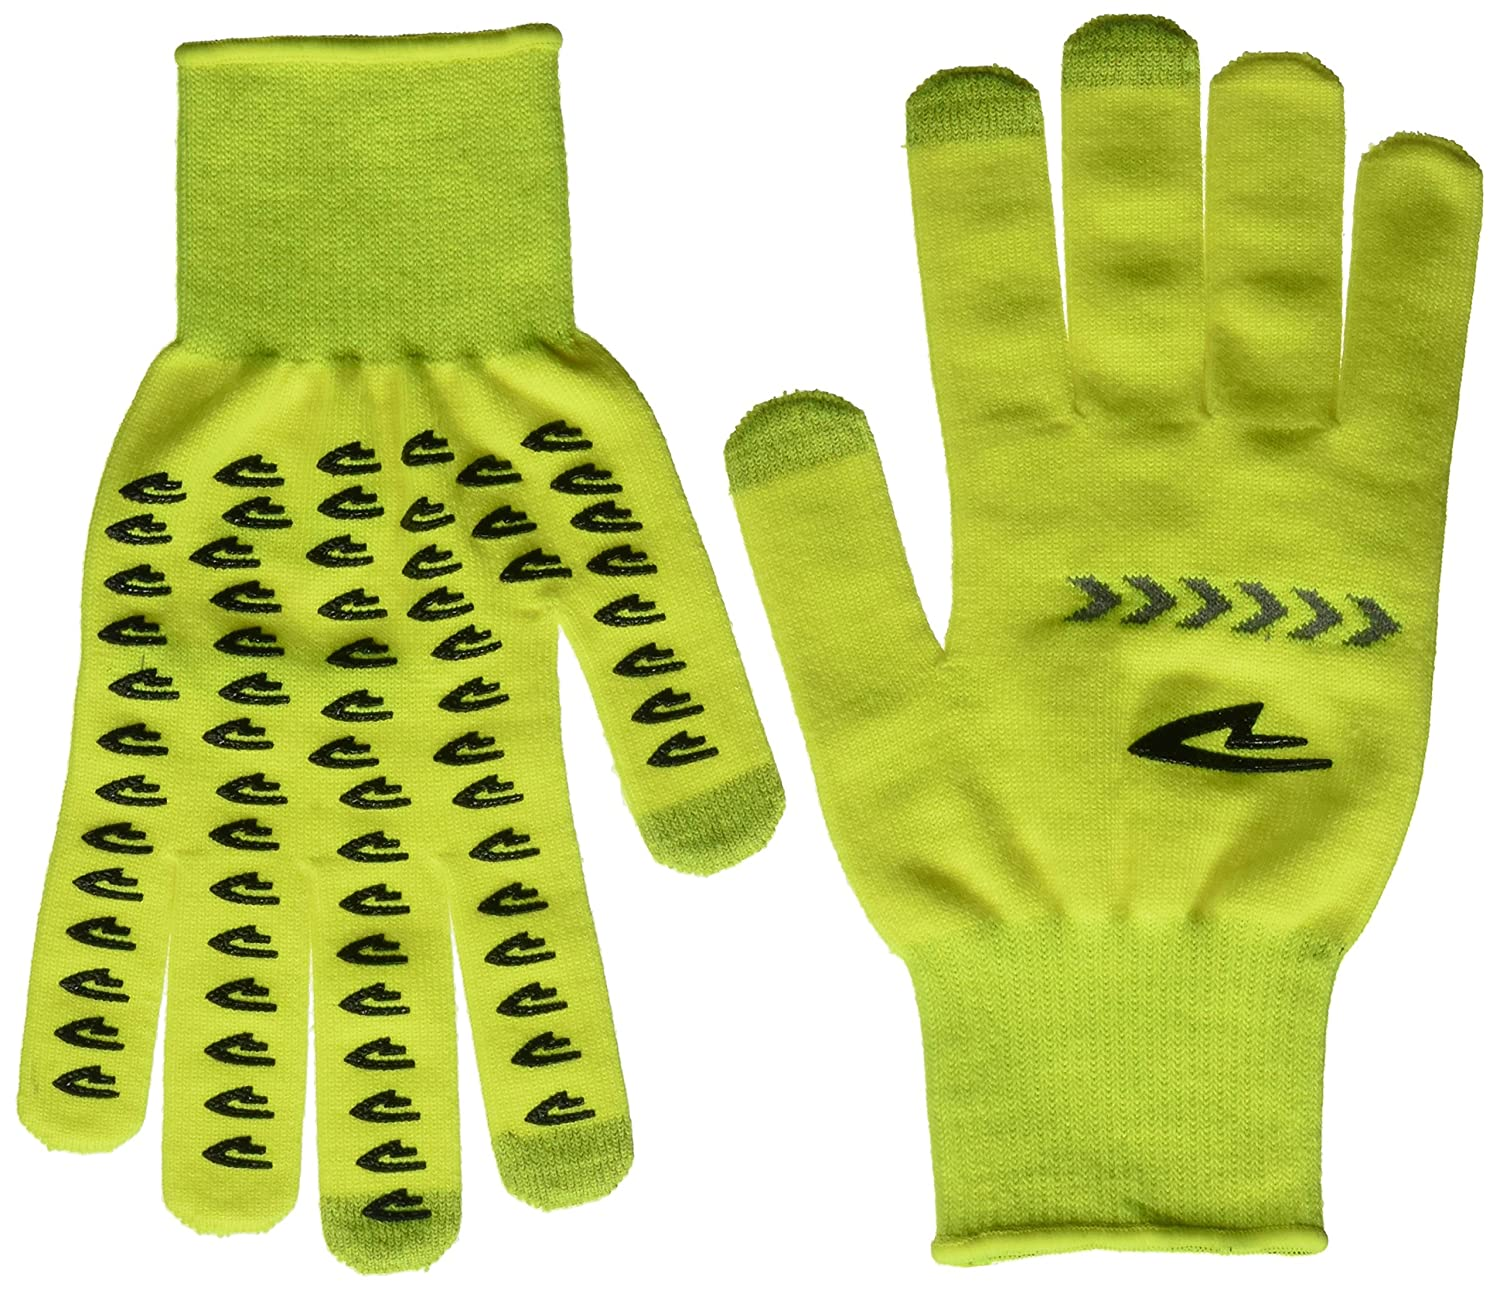 DeFeet Duragloves - Best Ultralight Hiking Gear